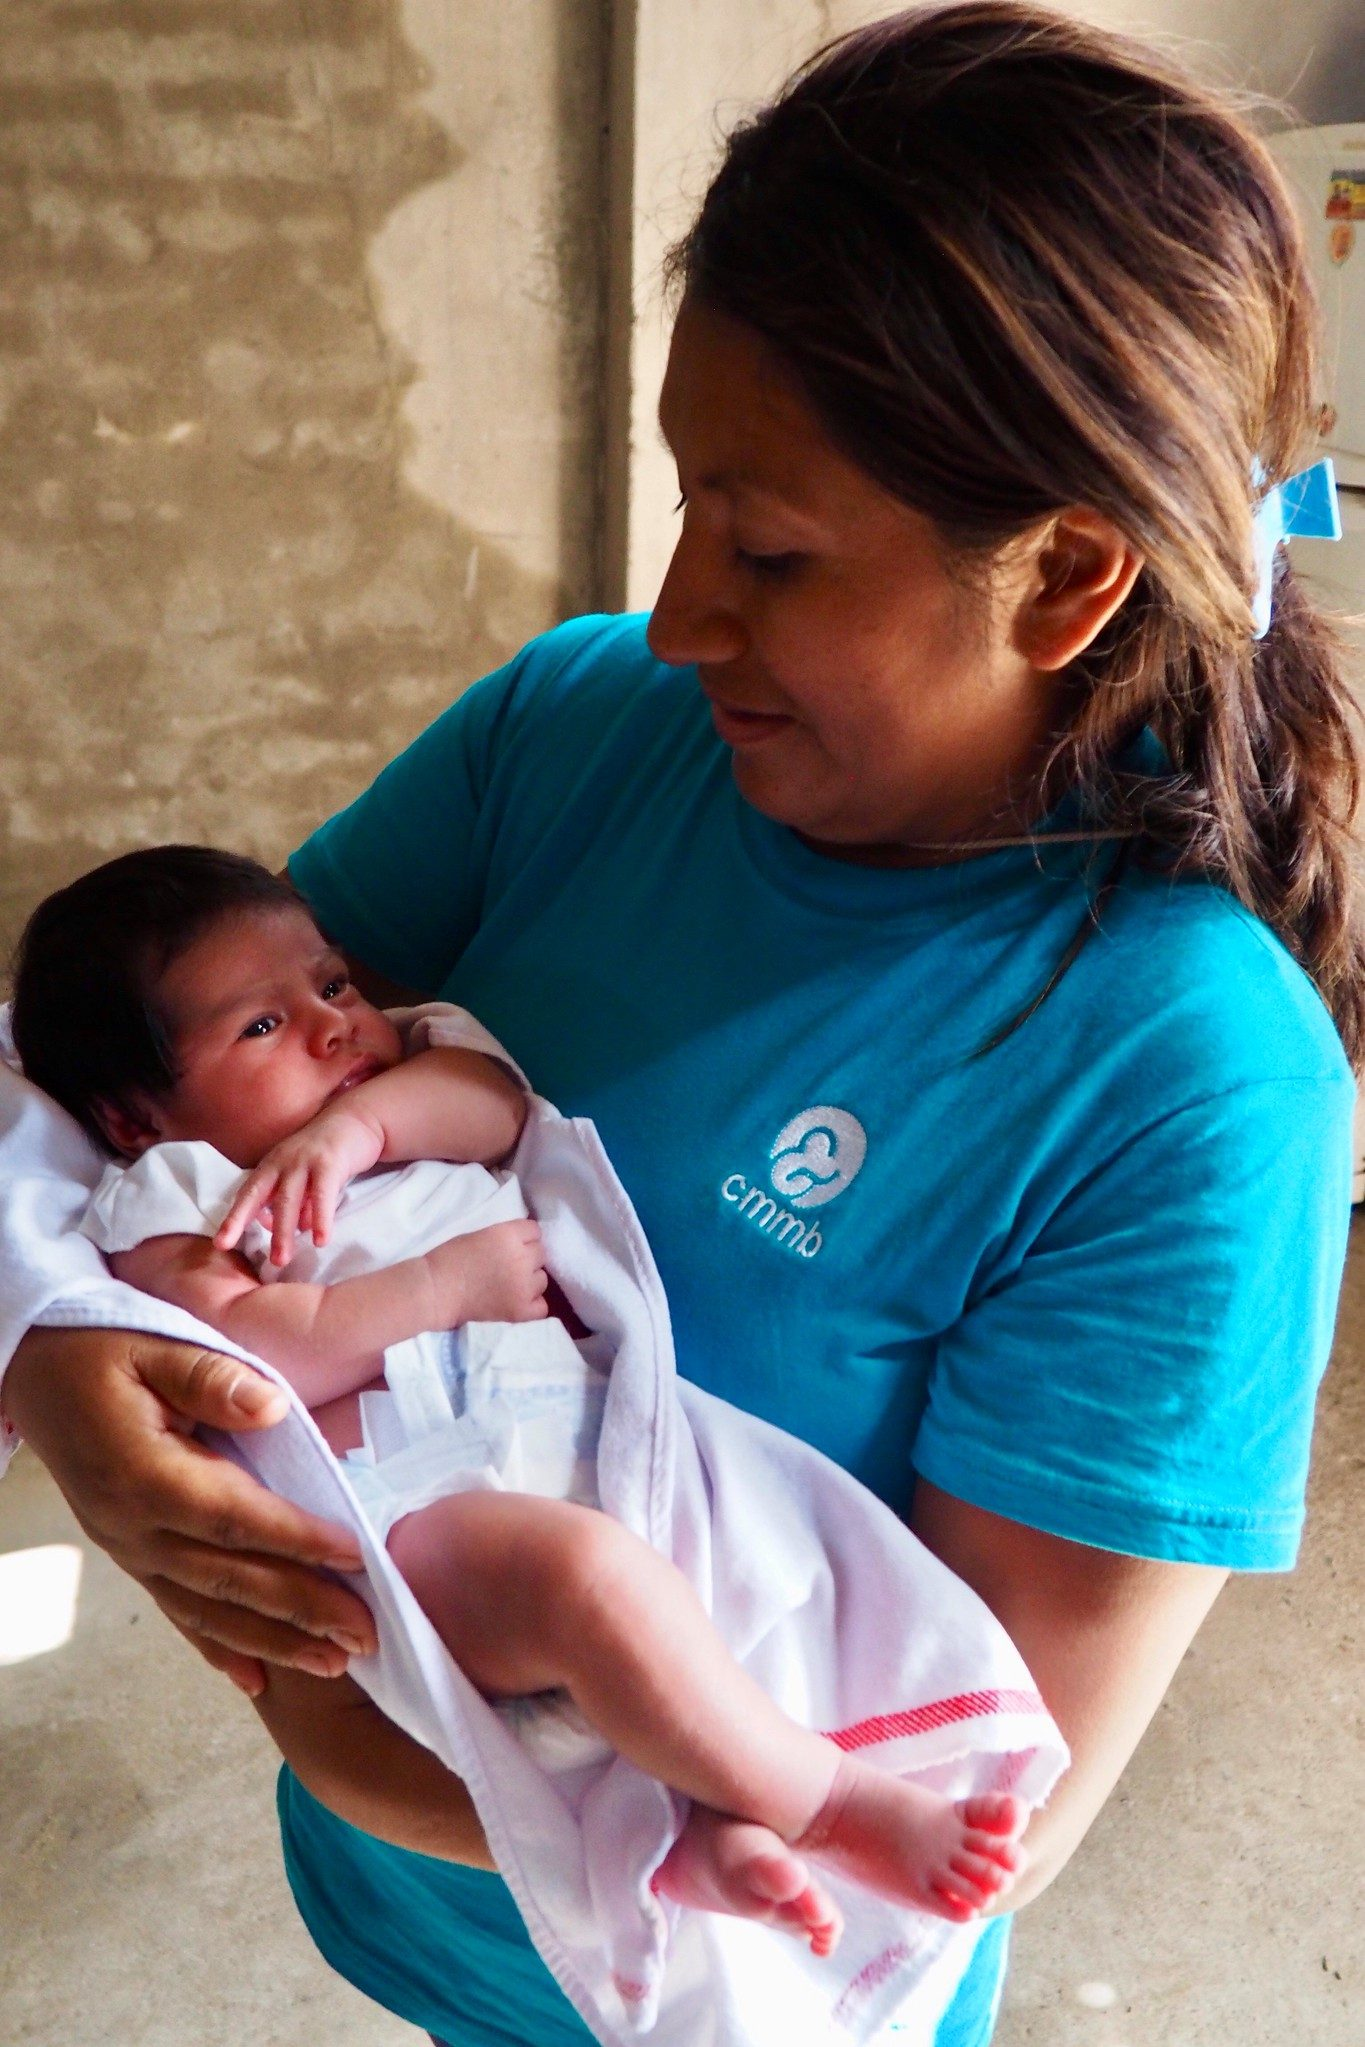 Silvia holds a newborn in her community. She is a CHW and part of her role is to identify children at risk for anemia